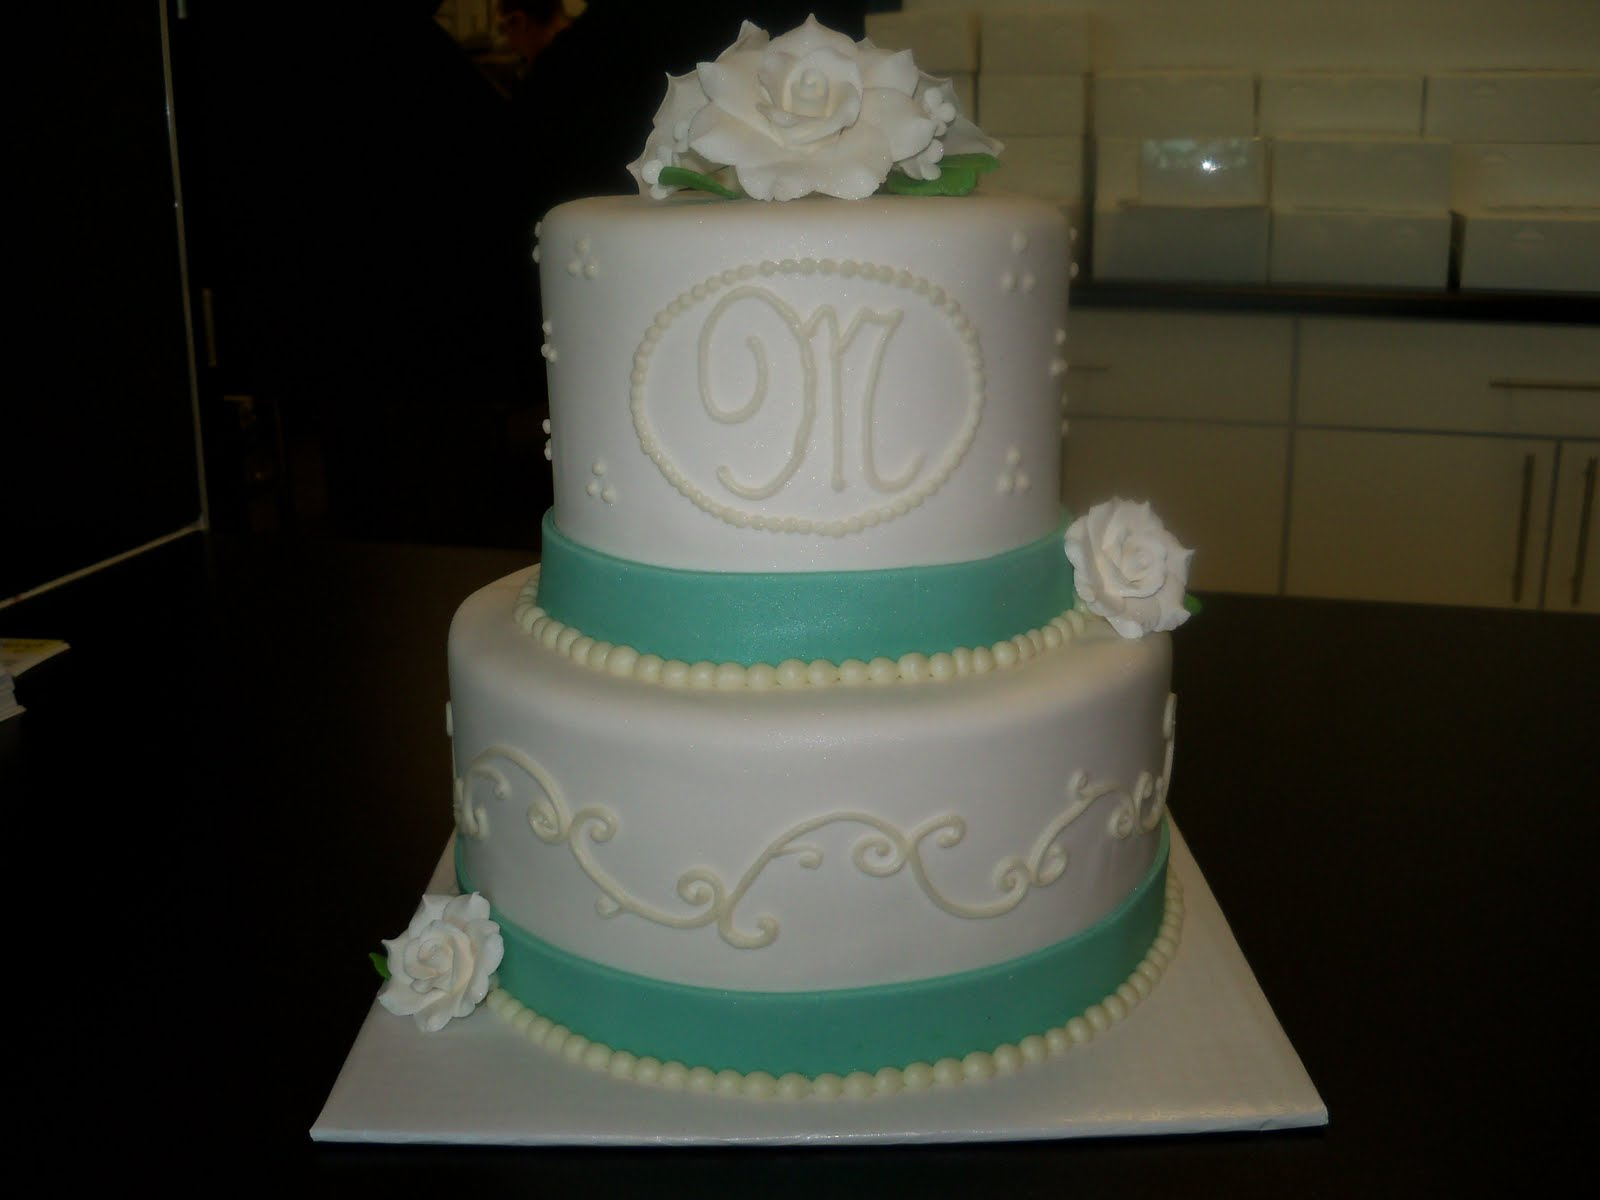 Pin Quinceanera Tiffany Themed Gift Box Cake ƒÆ'¢â'¬Å